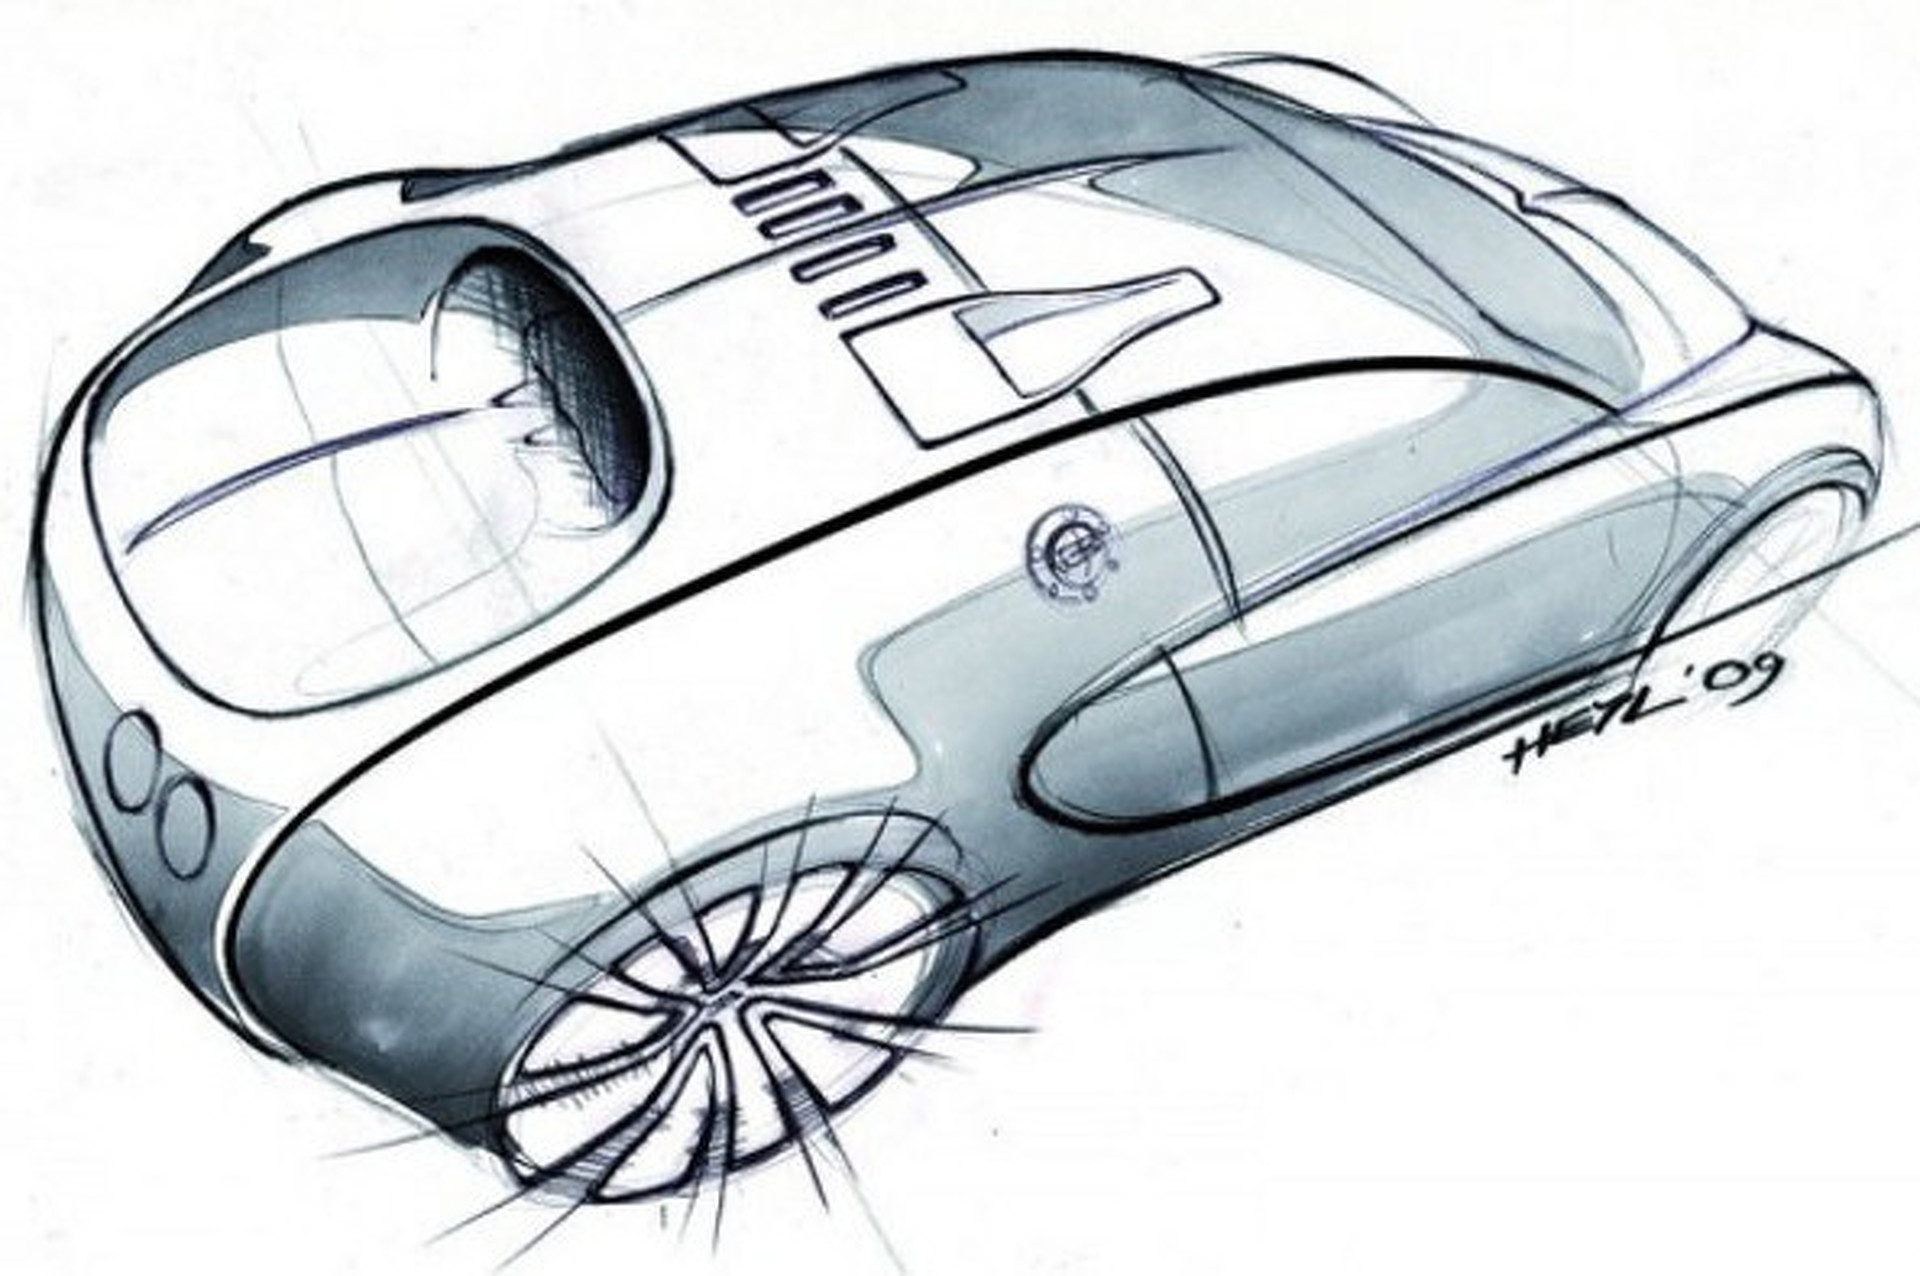 Bugatti Planning Limited-Run Super-Veyron